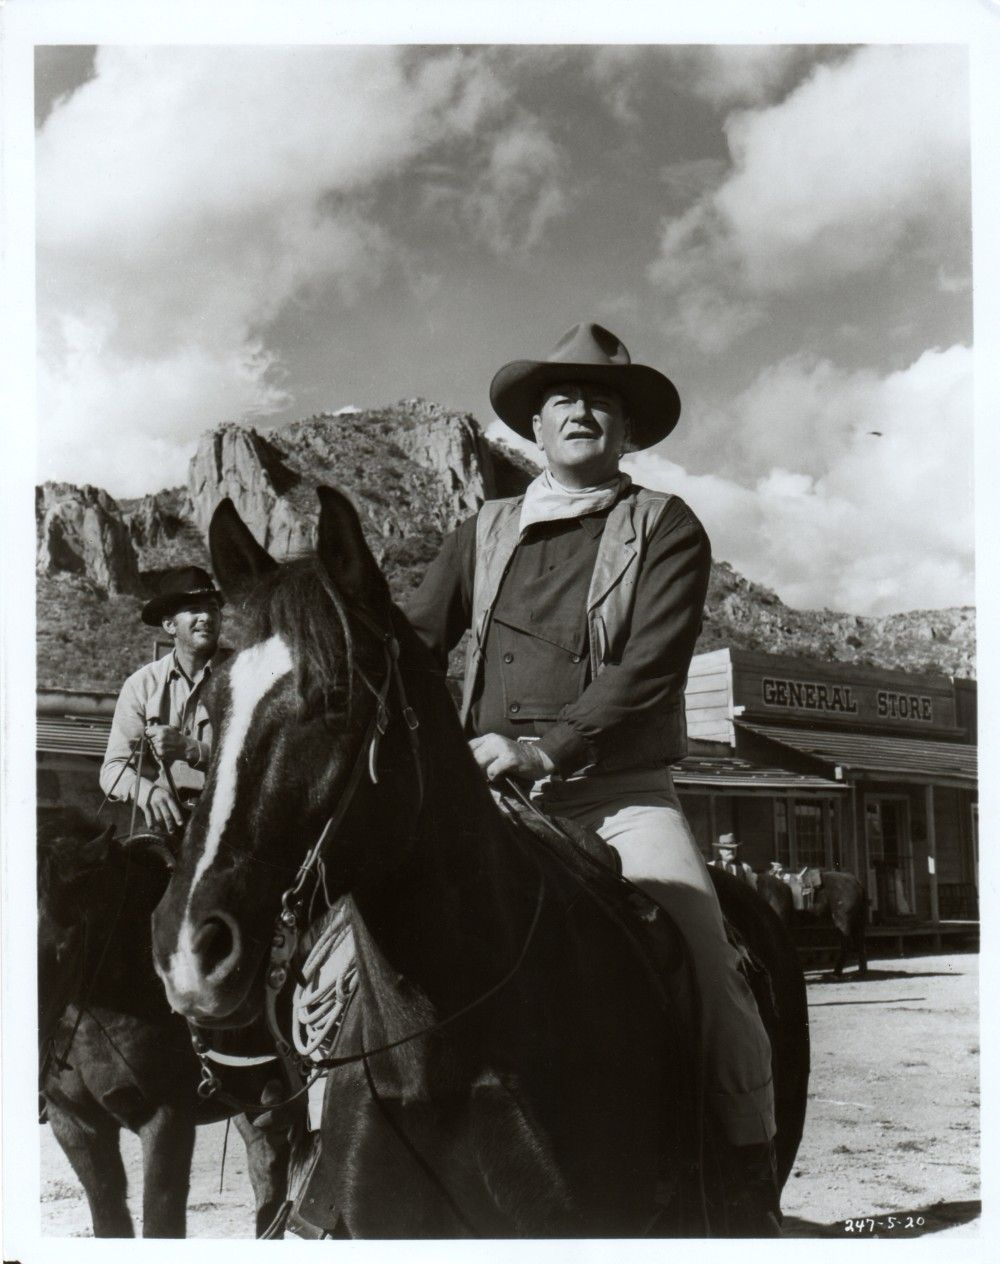 THE SONS OF KATIE ELDER (1965) - John Elder (John Wayne) on horseback with Dean Martin - Durango, Mexico - Produced by Hal Wallis - Directed by Henry Hathaway - Paramount Pictures - Production Still.